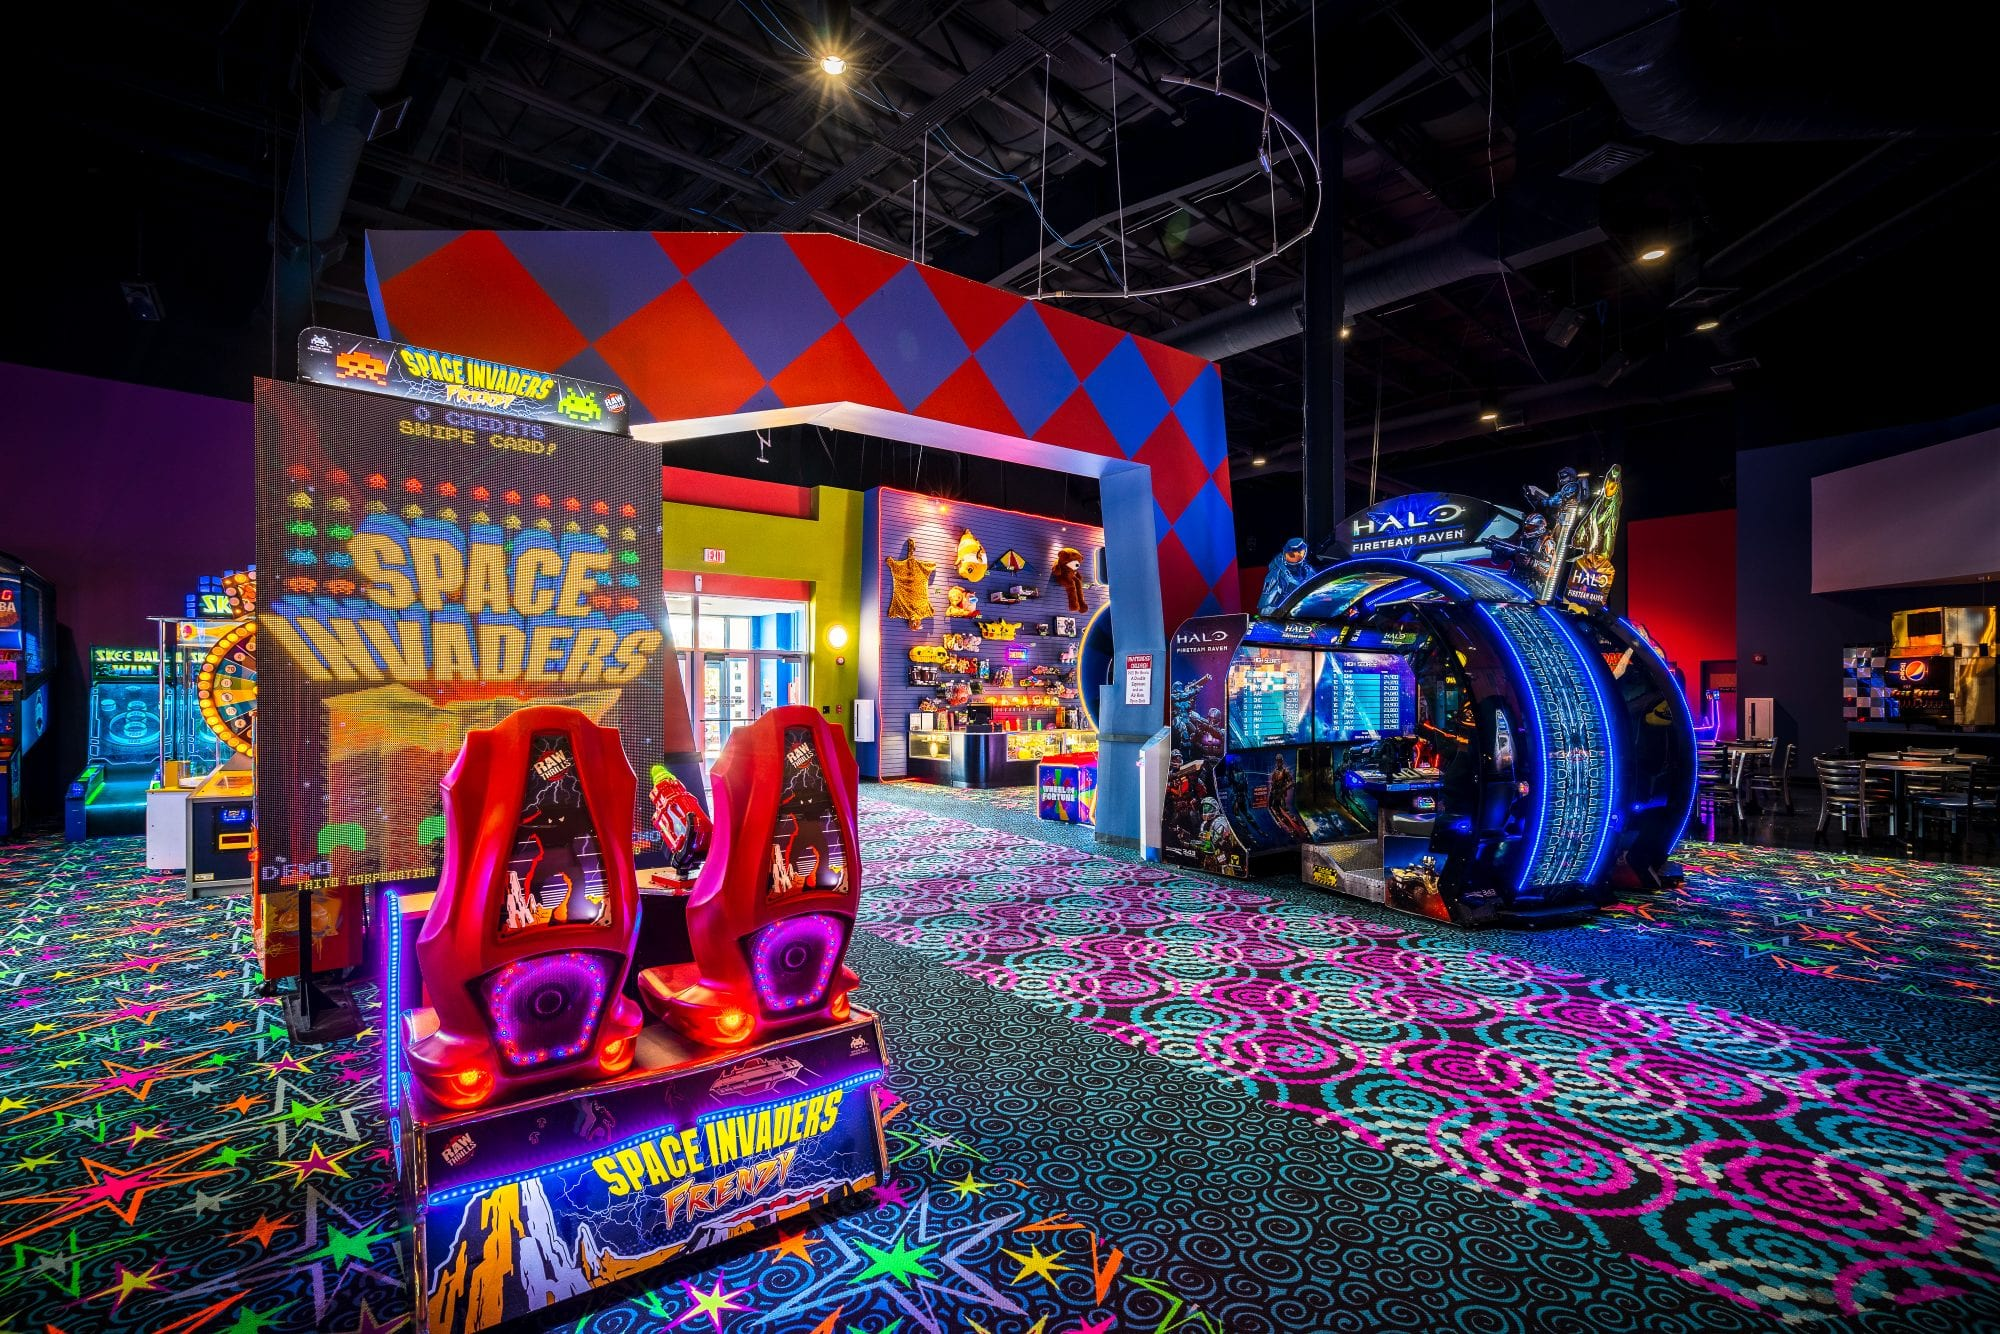 MacDaddy's - Family Fun on the Crystal Coast, arcade